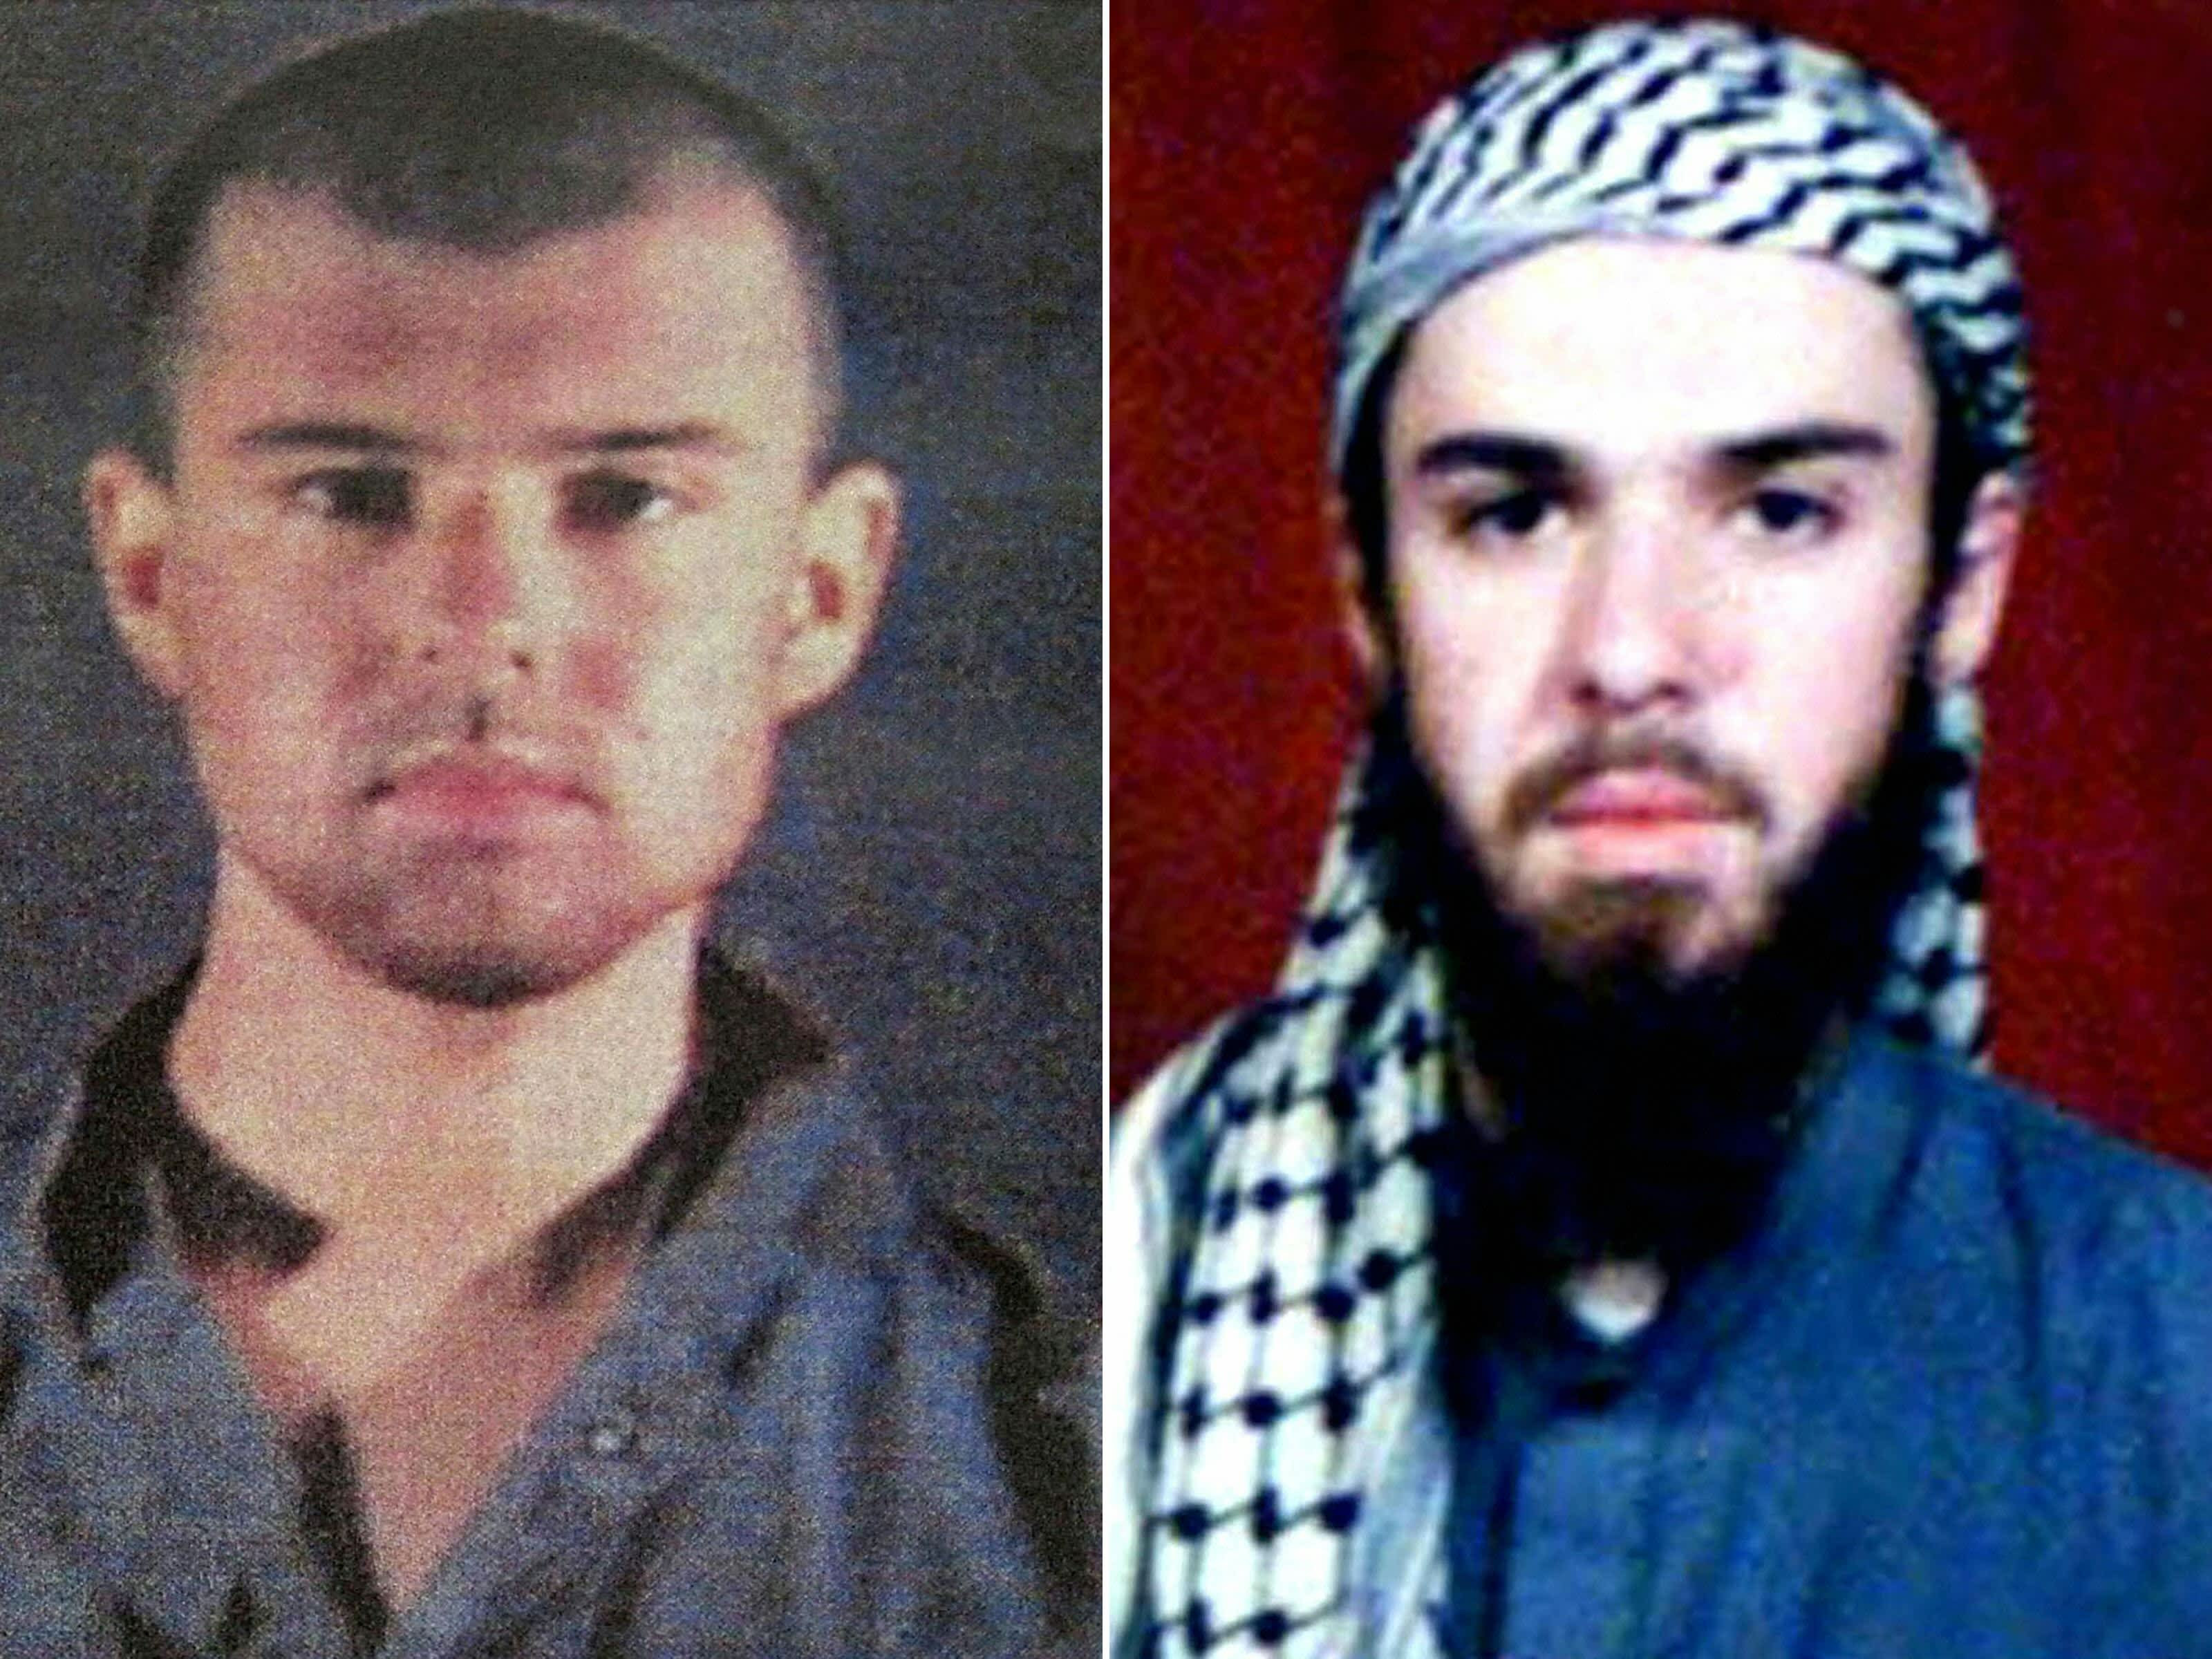 'American Taliban' John Walker Lindh released from prison after 17 years